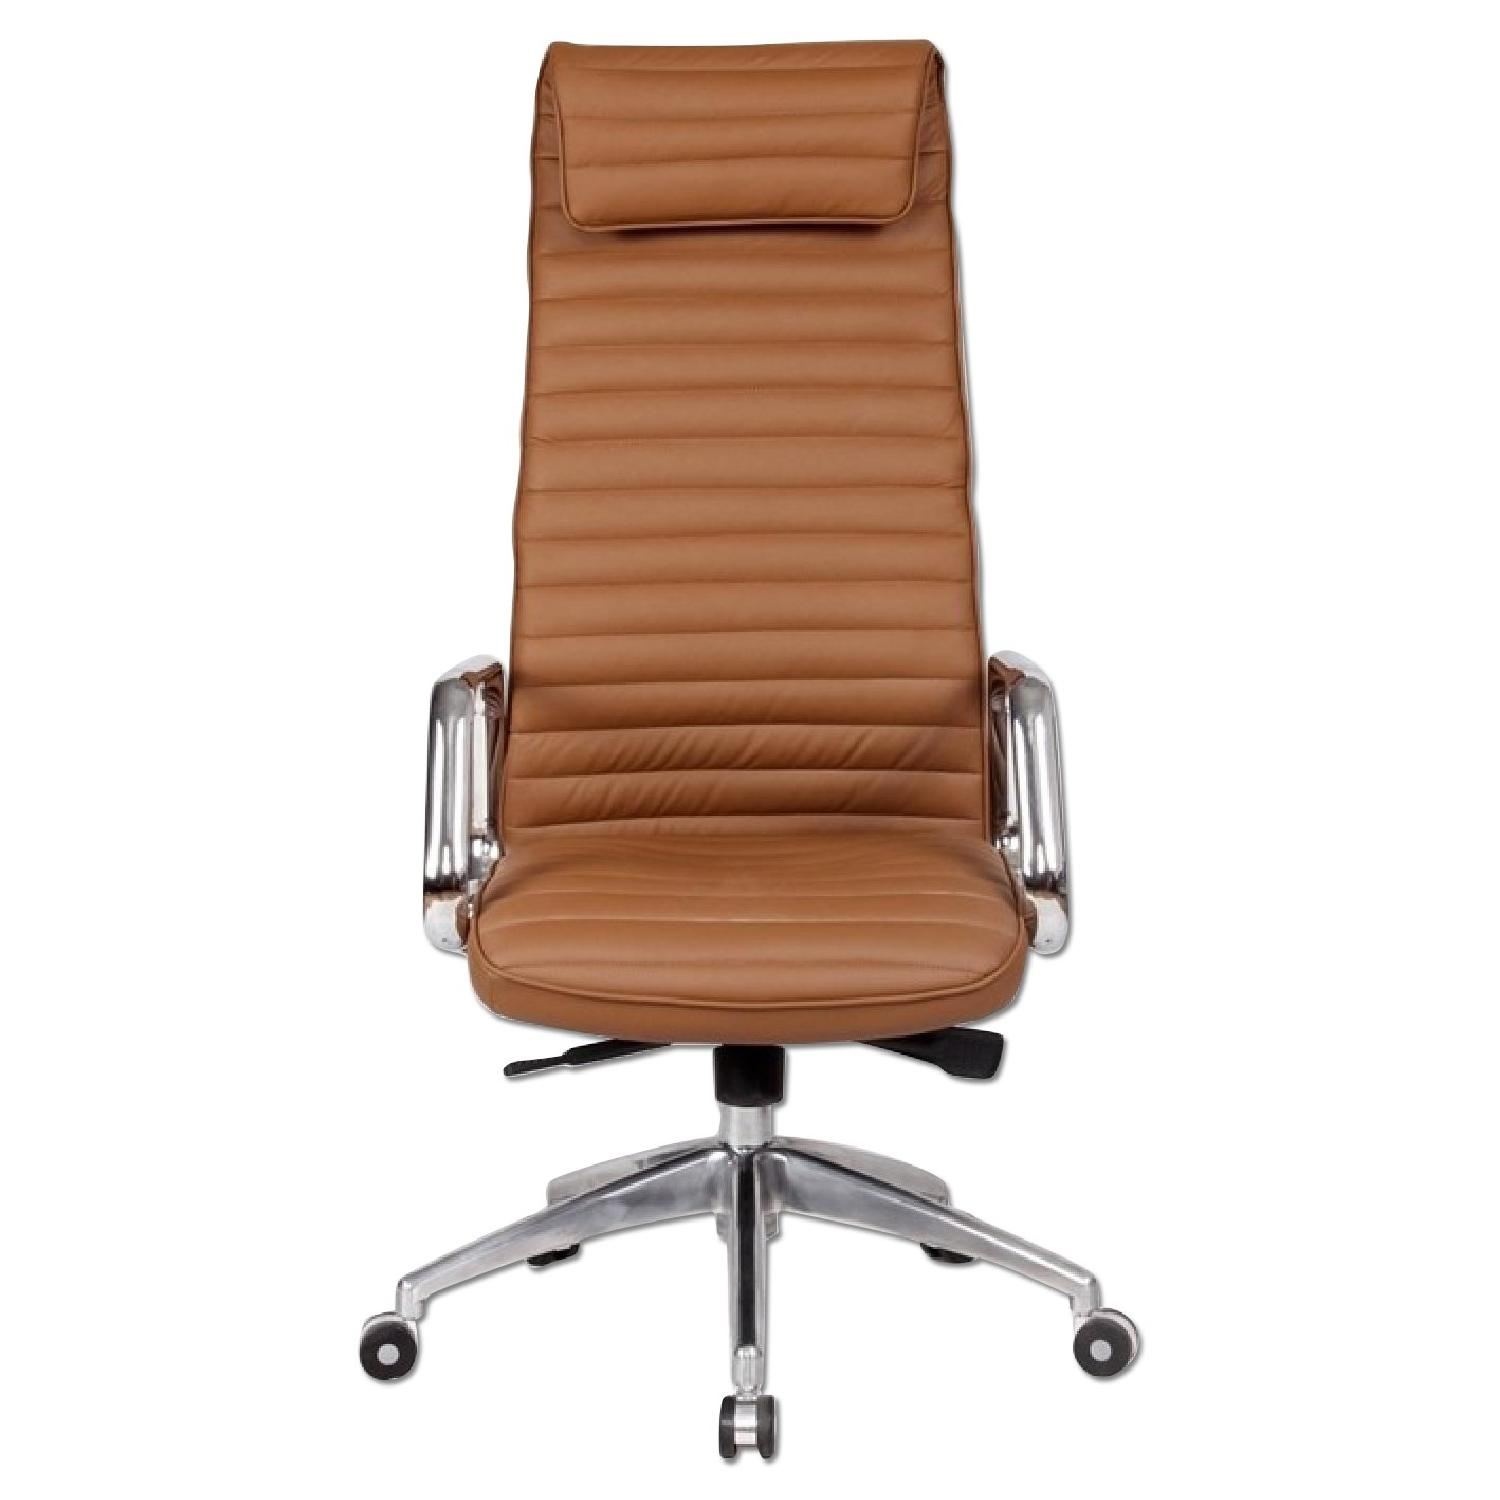 Steel Frame High Back Office Chair W Padded Seat AptDeco